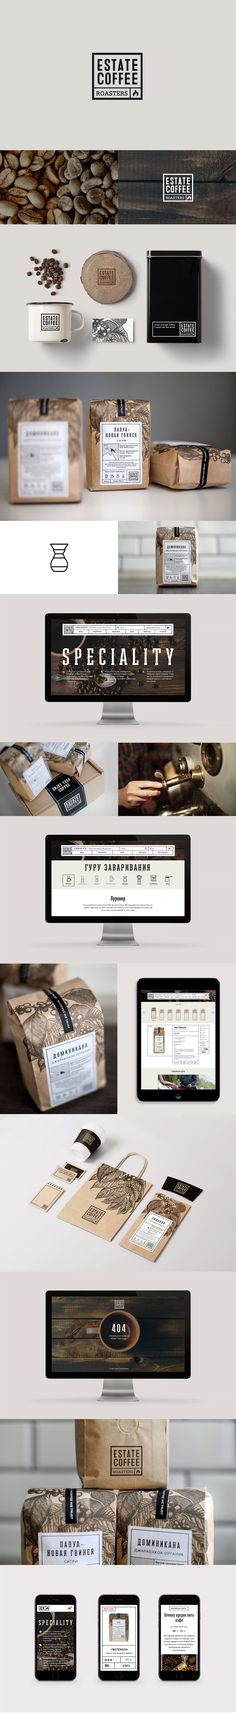 Branding and packaging design was crafted for Estate Coffee Roasters, young and…